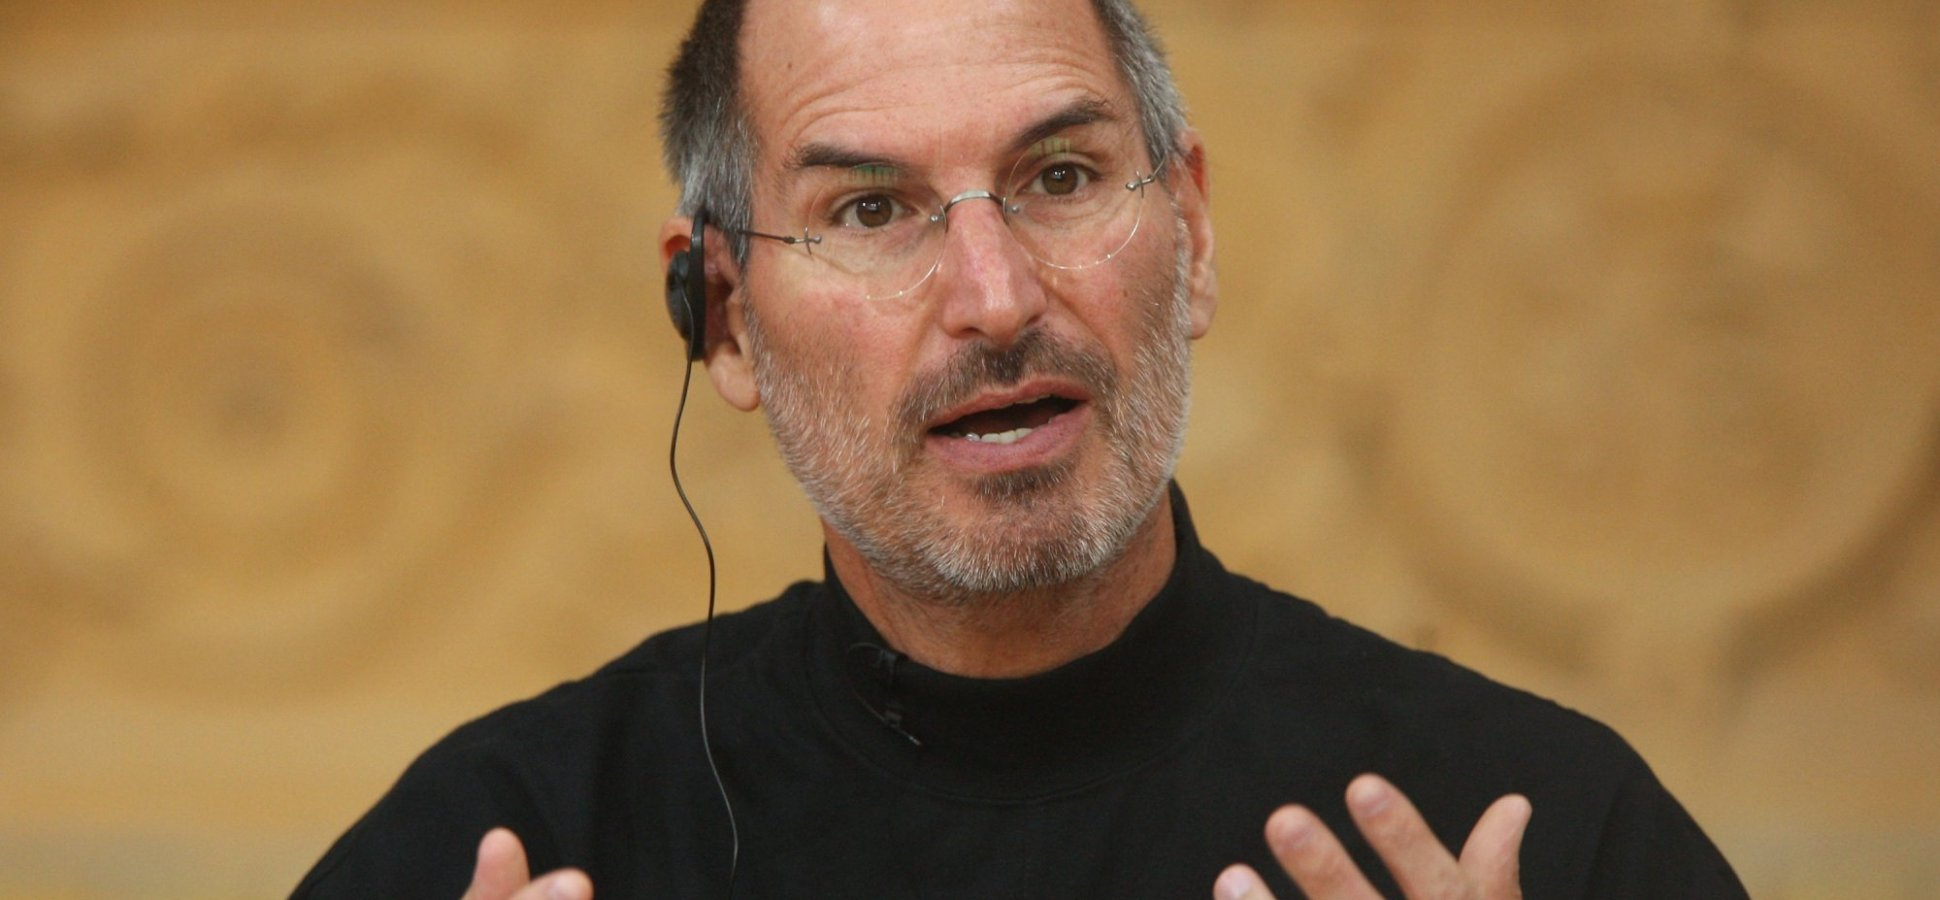 33 Steve Jobs Quotes That Will Inspire You to Success